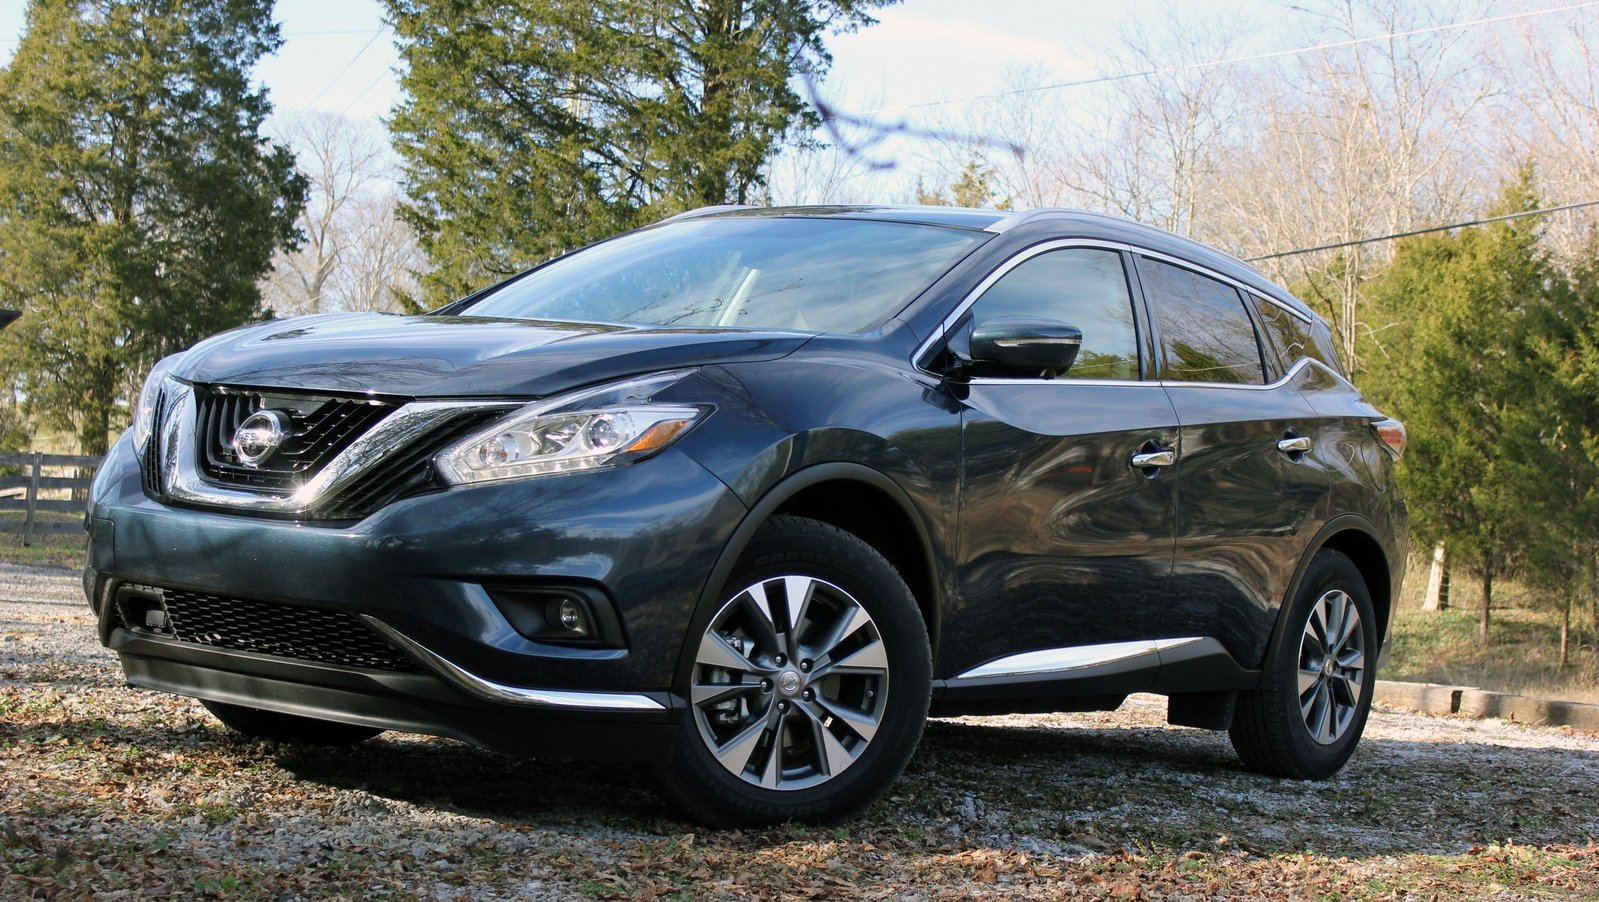 2014 nissan murano driven picture 612104 car review. Black Bedroom Furniture Sets. Home Design Ideas